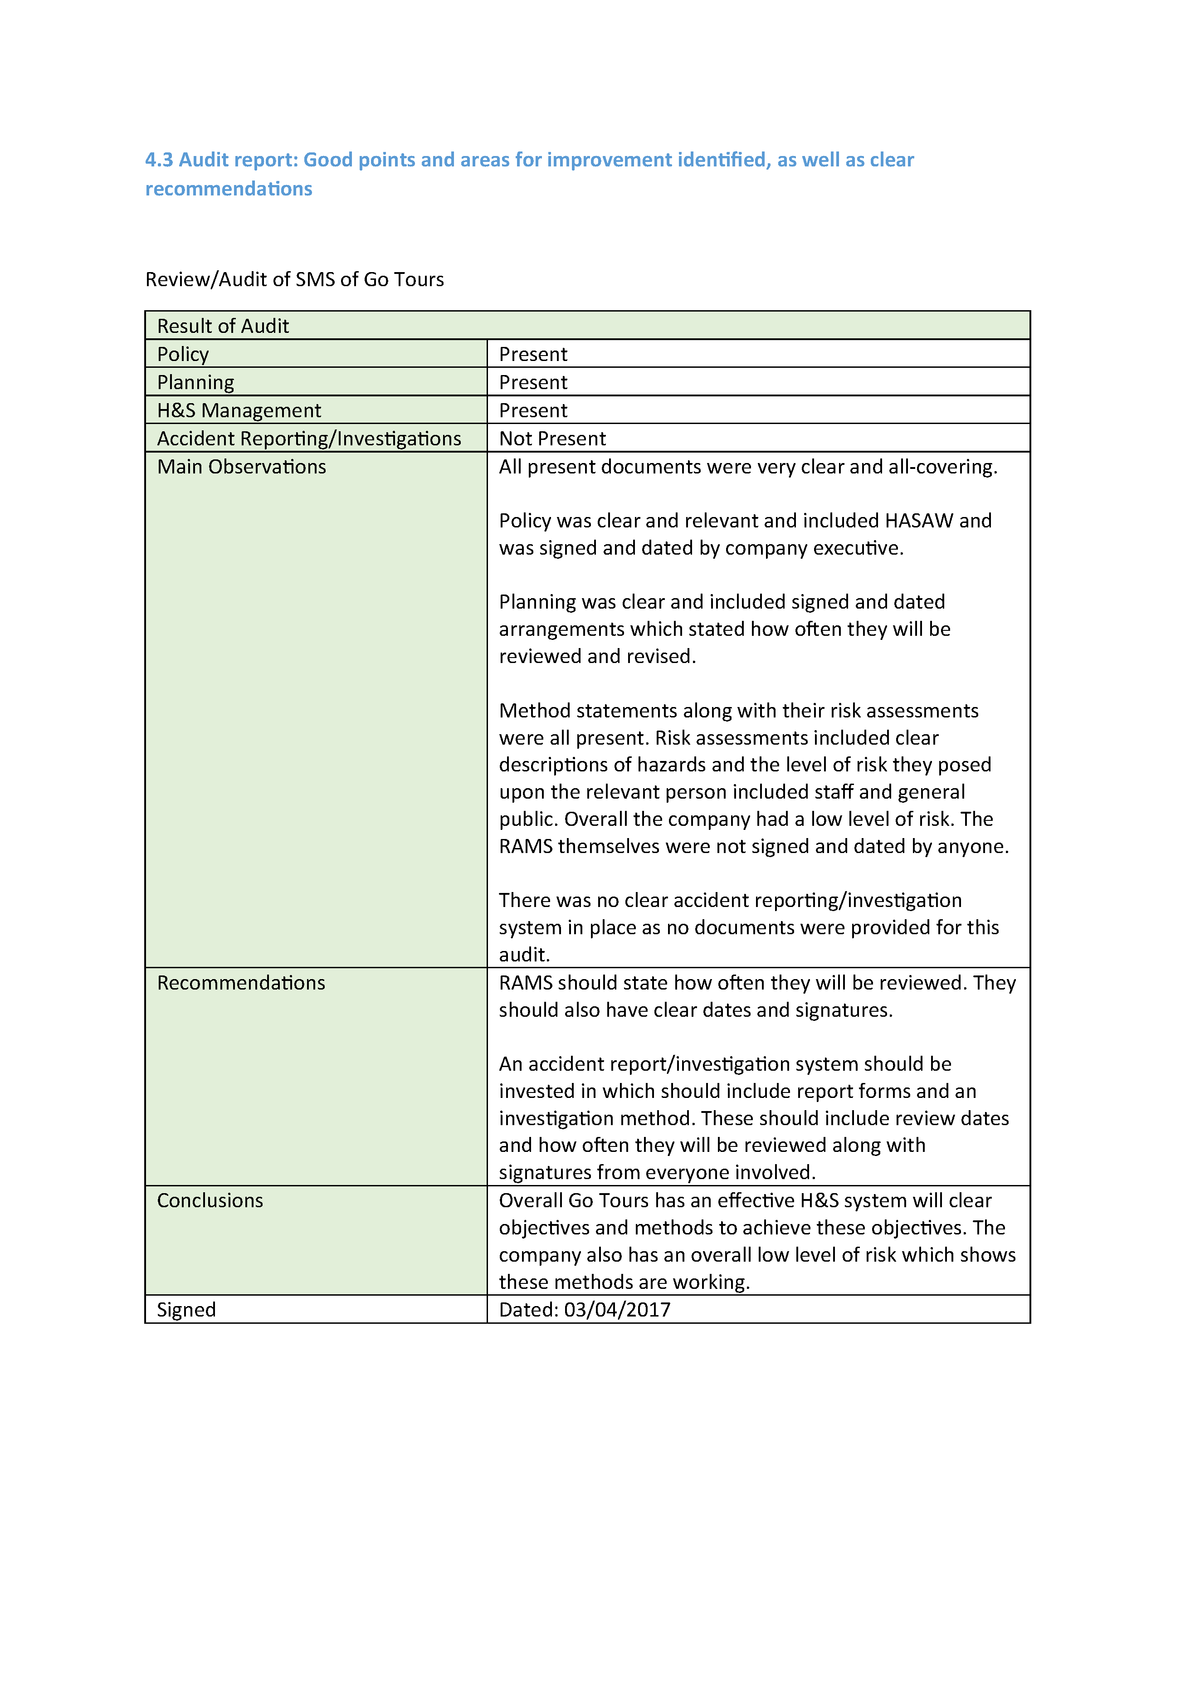 4 3  Audit report - Good points and areas for improvement